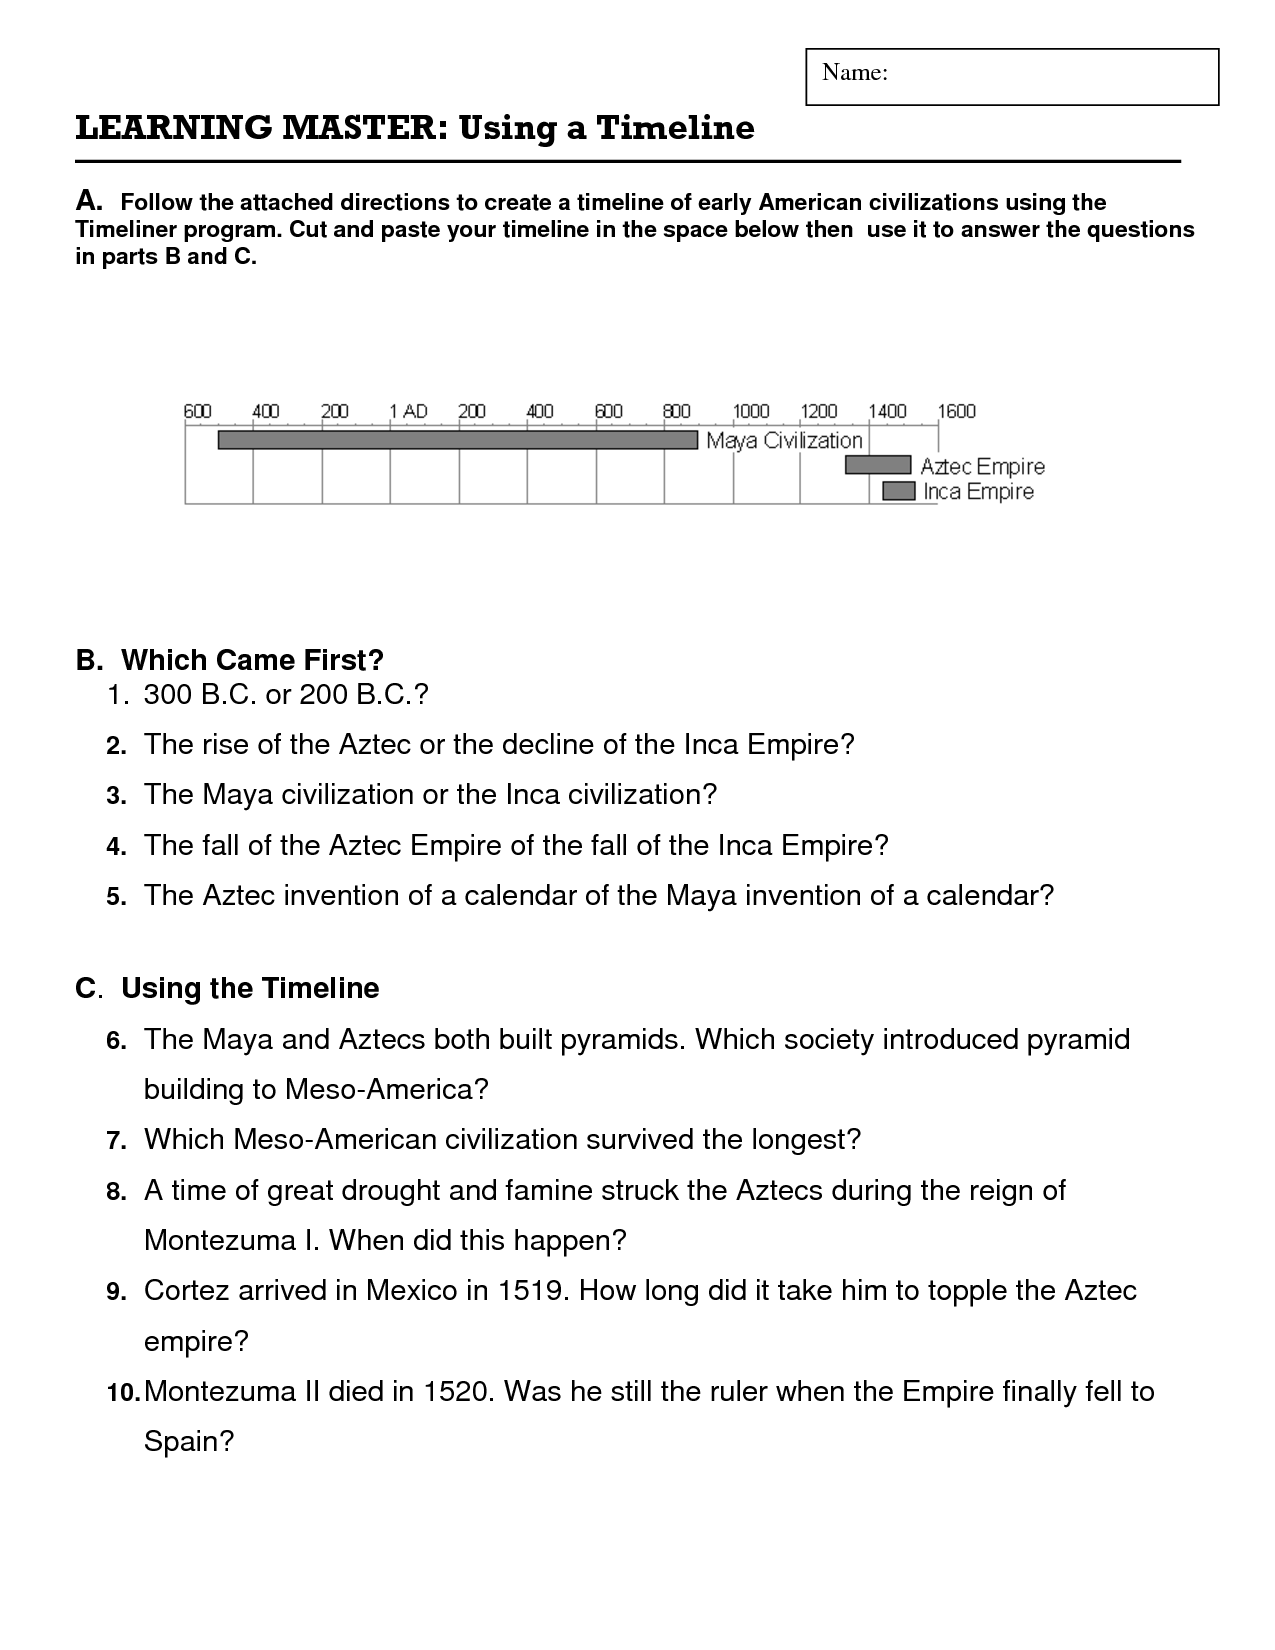 15 Best Images Of Timeline Worksheets With Questions